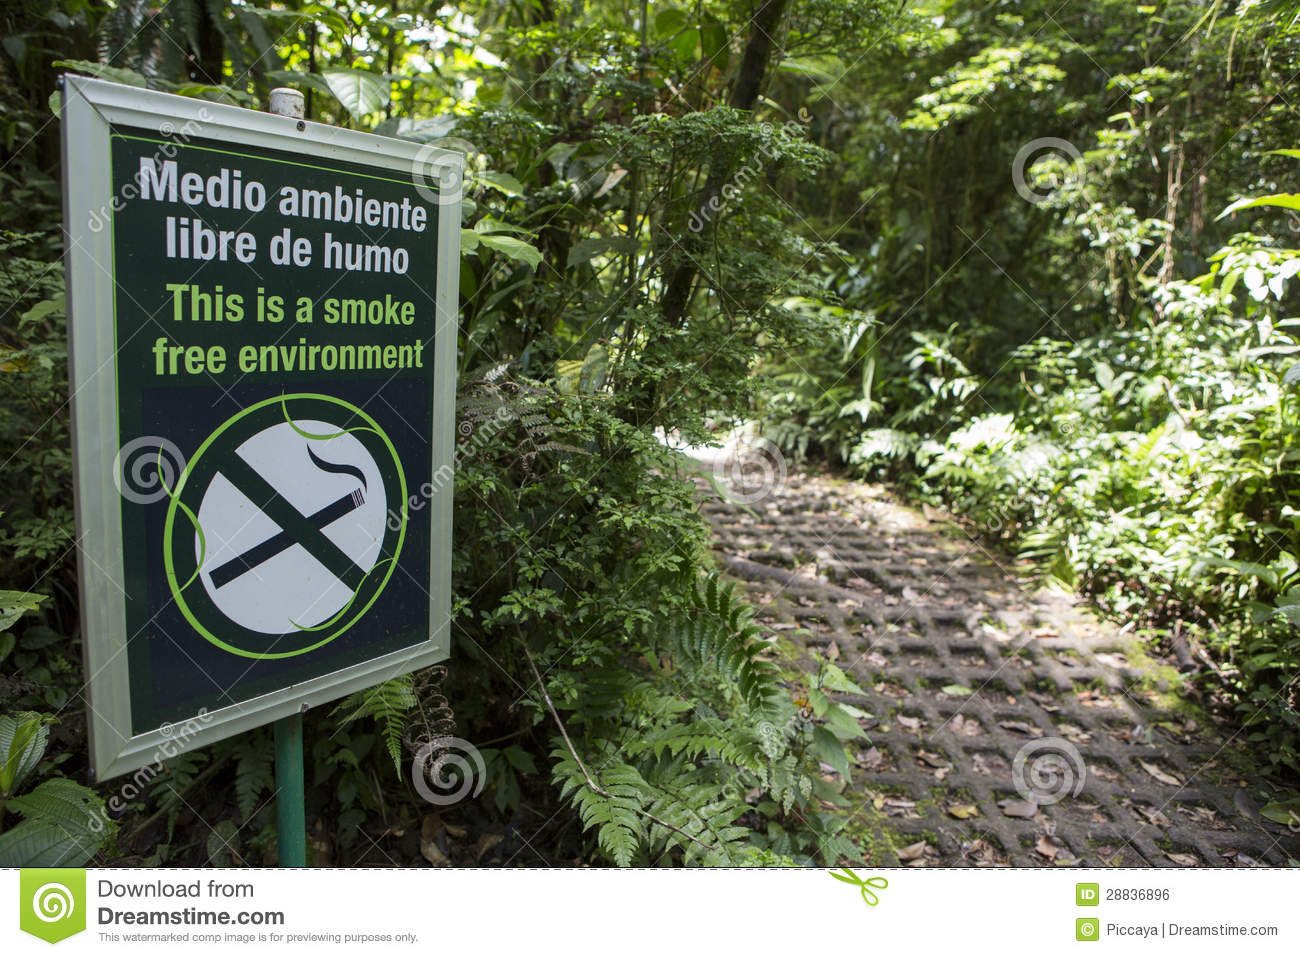 Smoke free environment sign in the forest monteverde costa rica